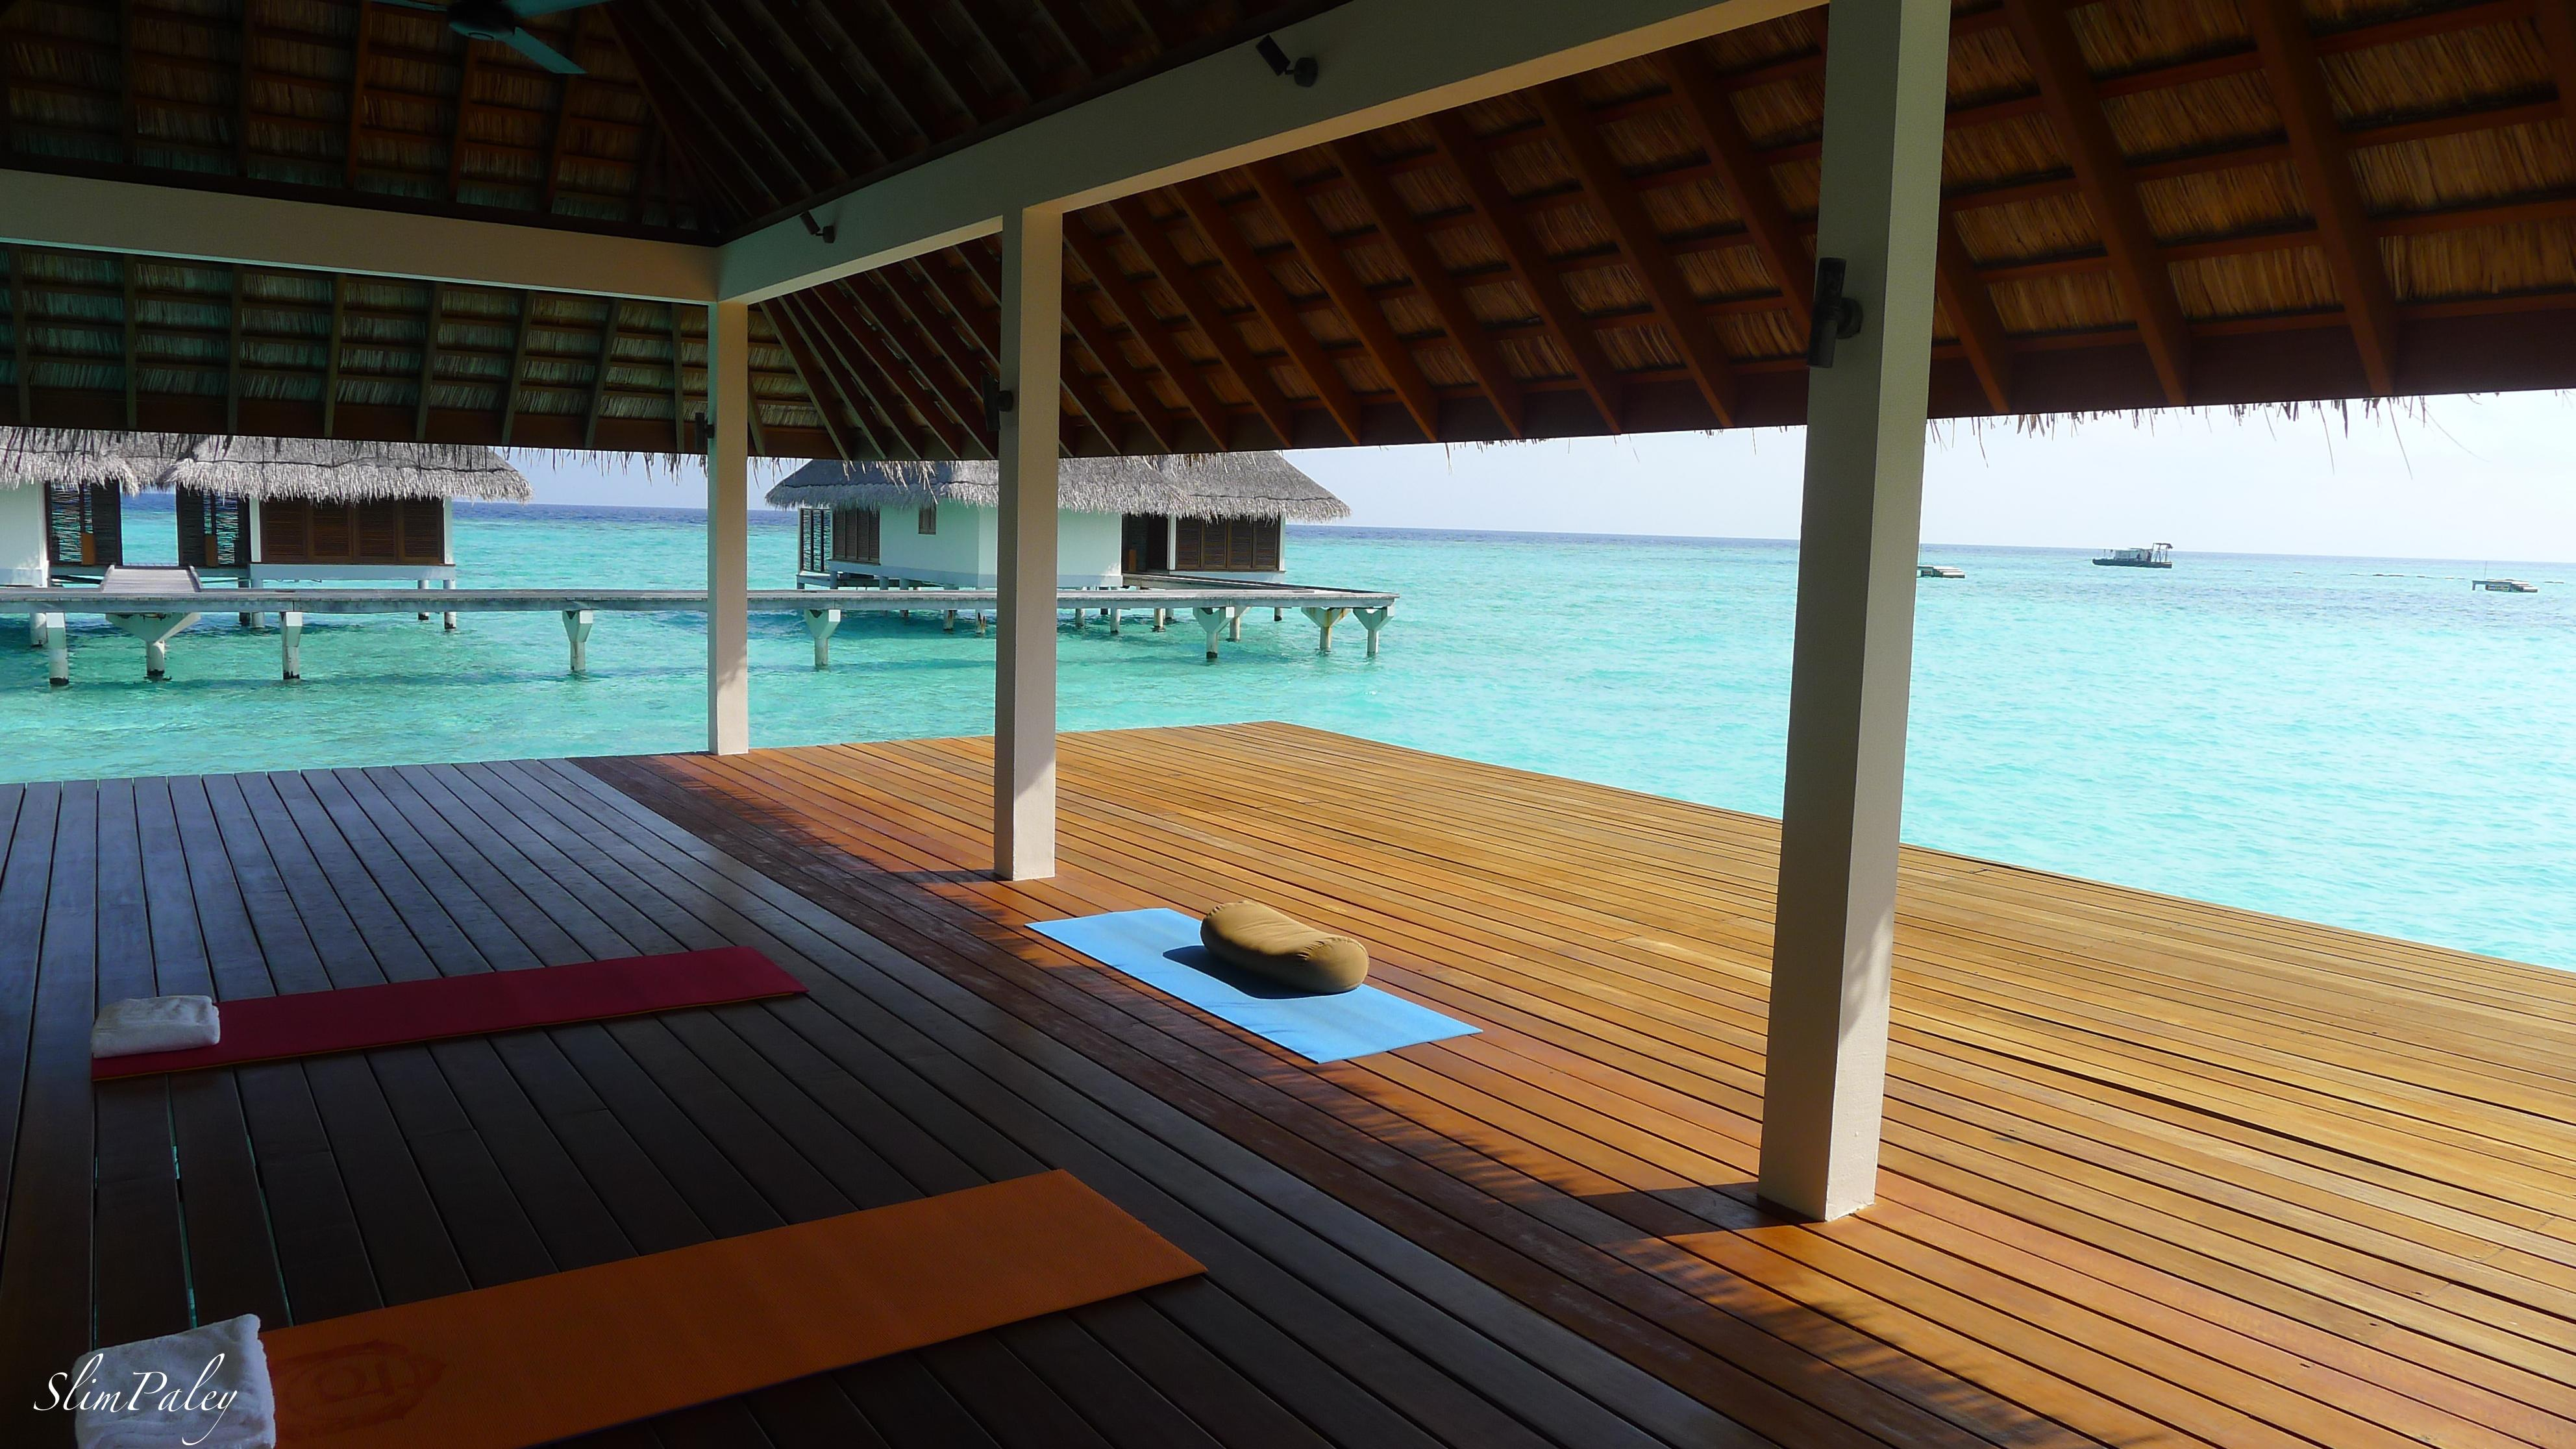 Yoga, Maldives, slimpaley